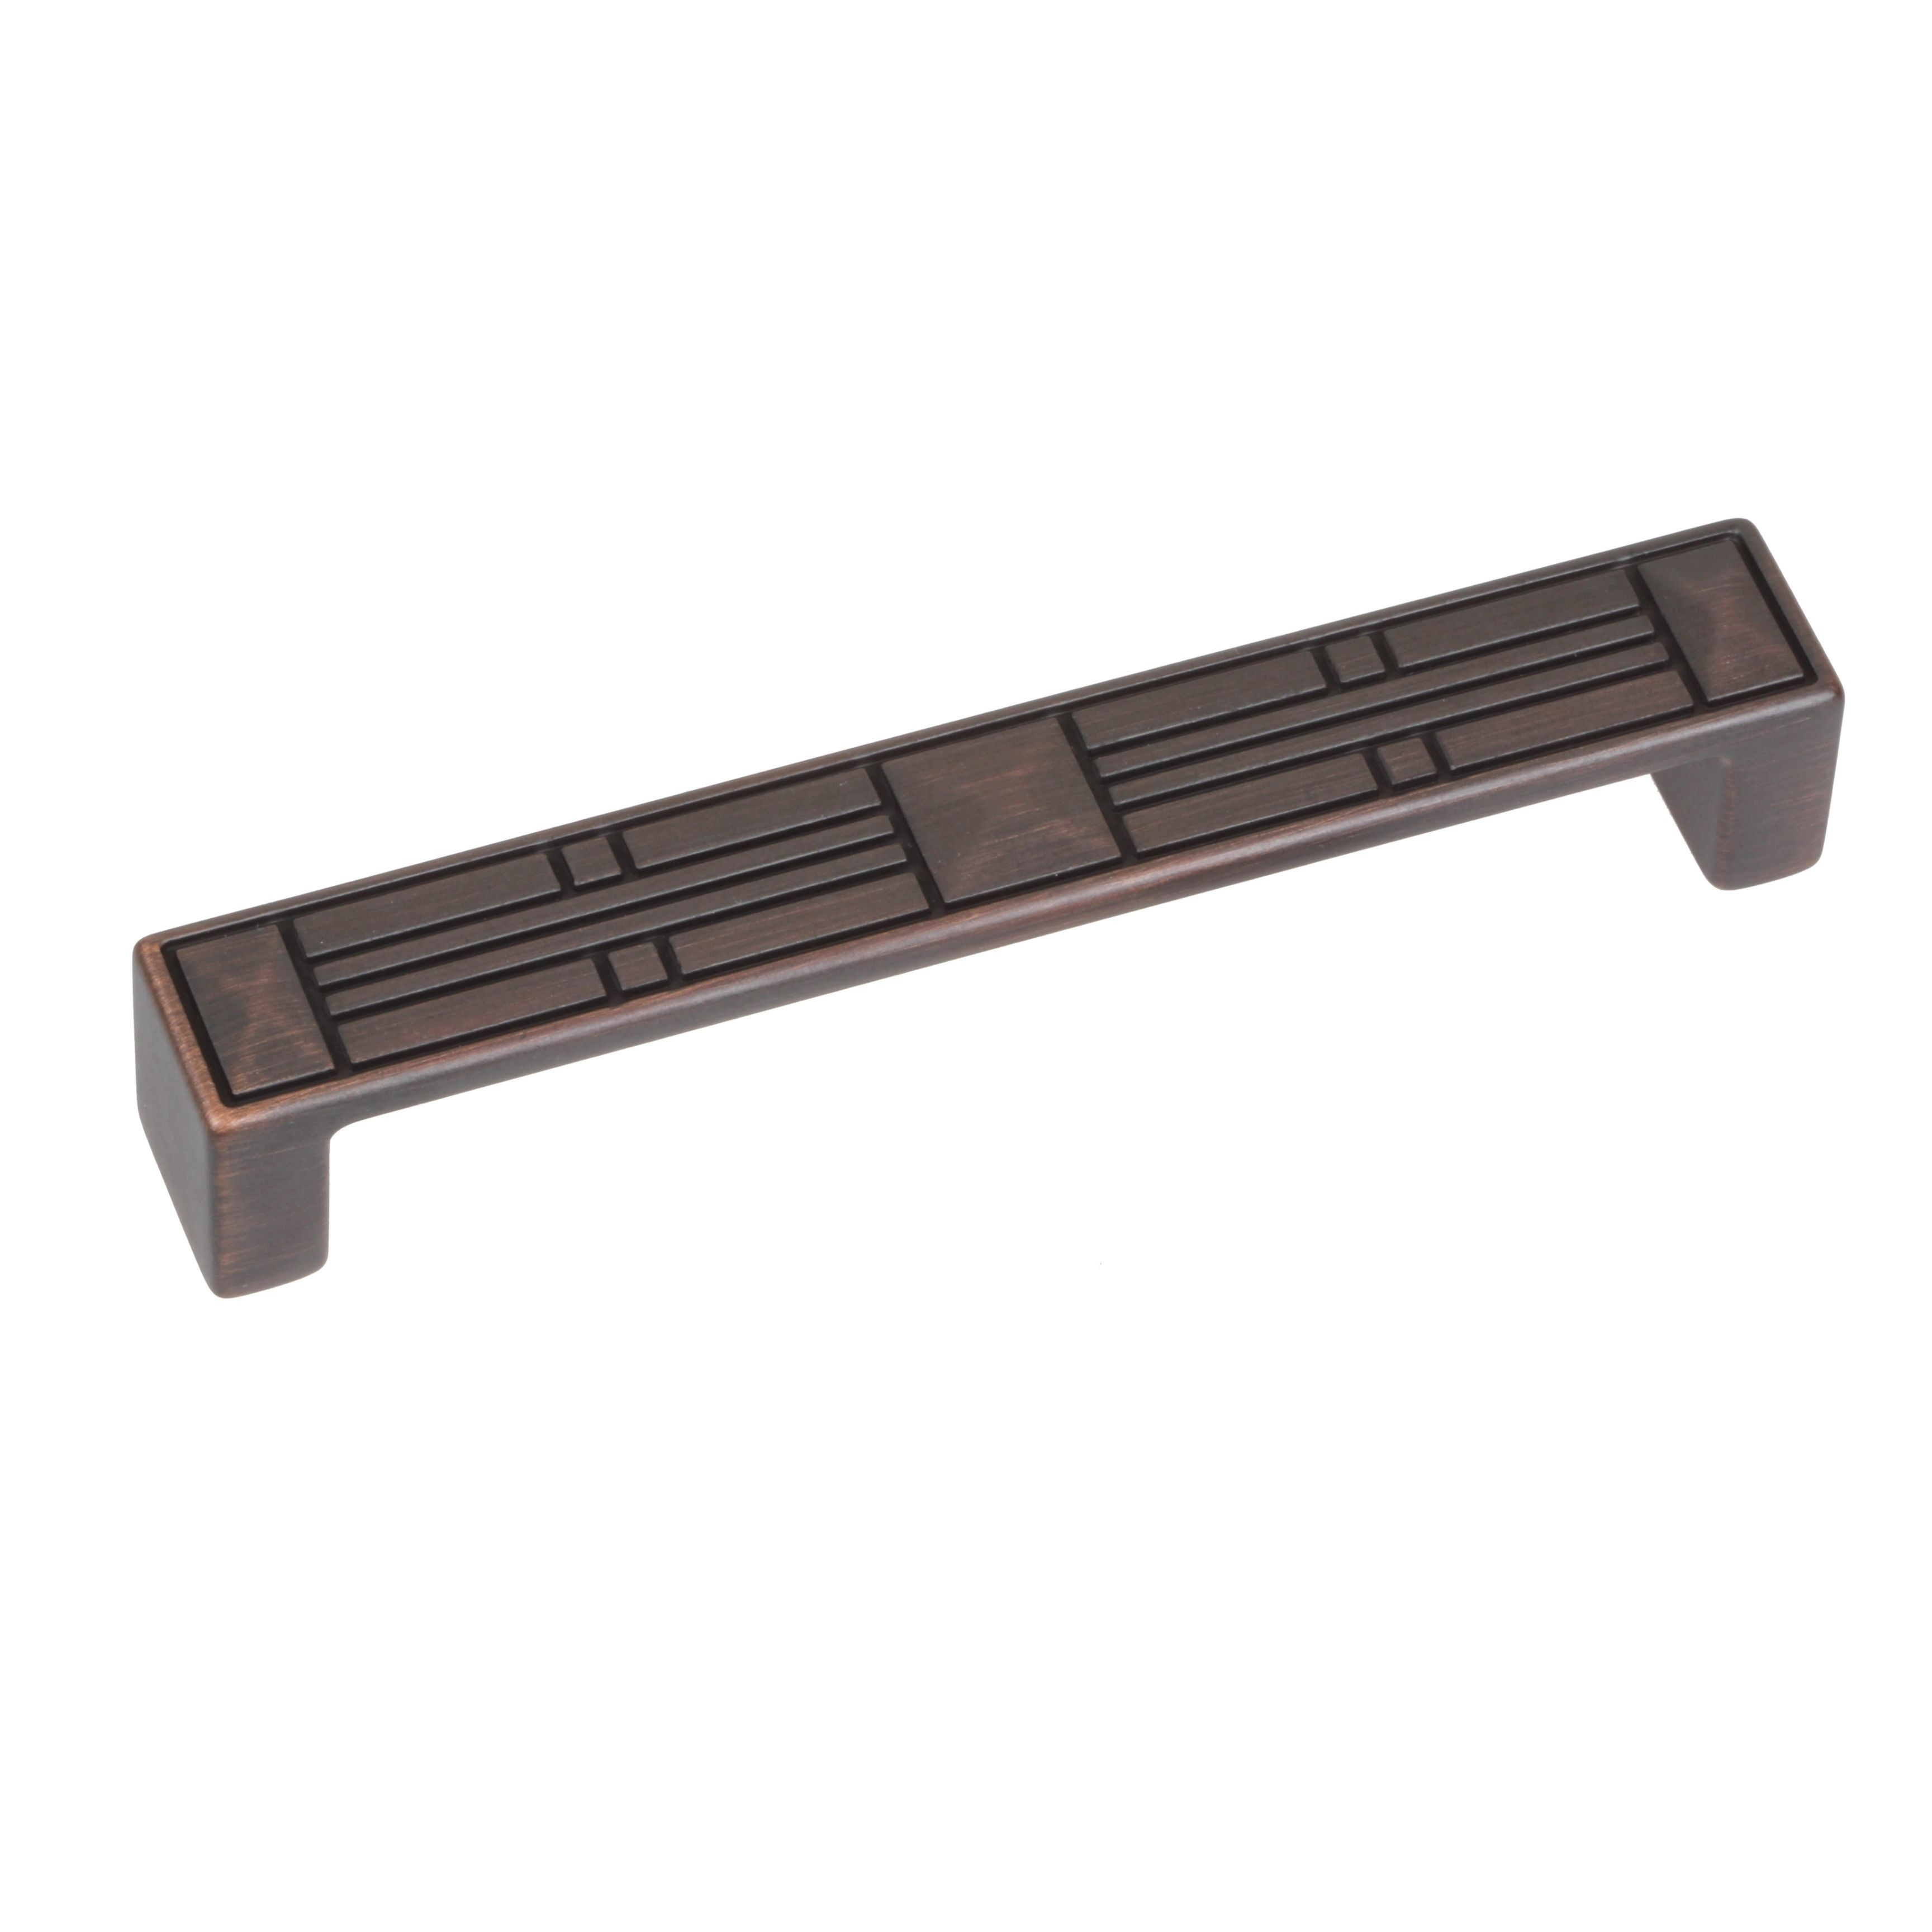 New Oil Rubbed Bronze Cabinet Pulls